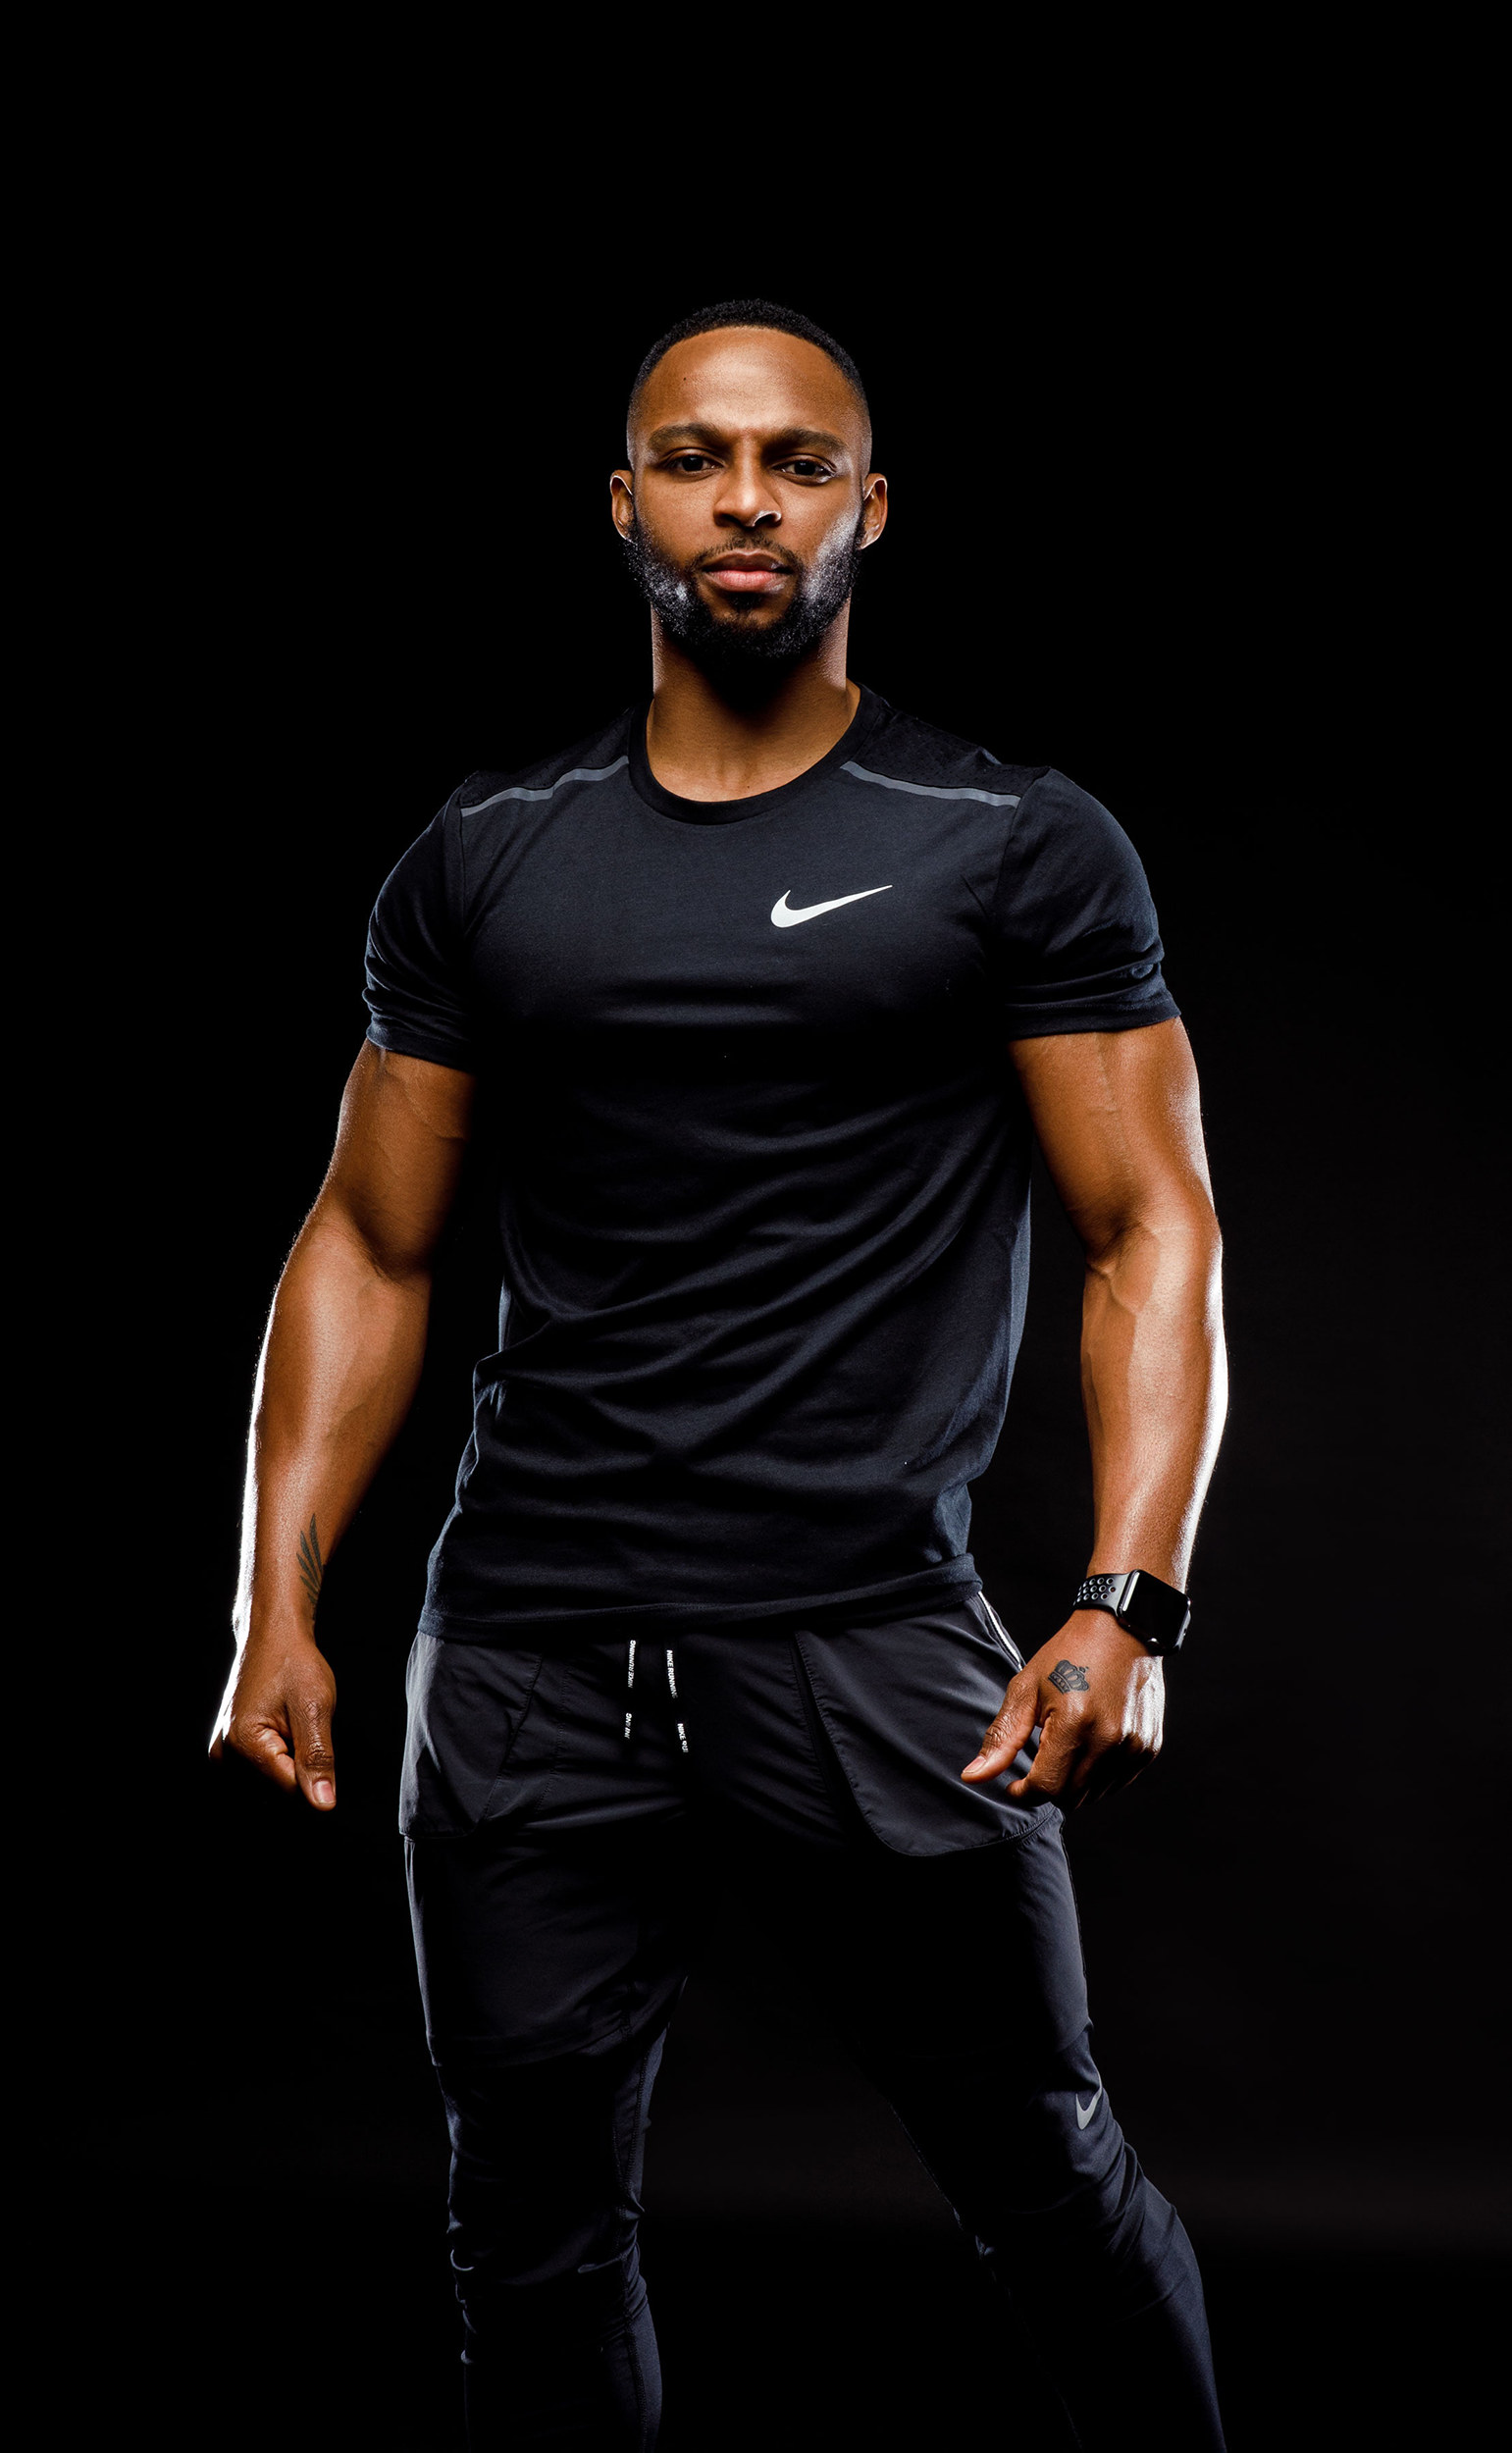 Ricky A. Dortch Jr. - Ricky Dortch is a NFPT certified personal trainer and nutrition specialist, which means he has been trained by a nationally accredited institution to guide individuals on their path to a healthier lifestyle. Ricky understands that no two bodies are alike and will work with you to get fit at the right pace.